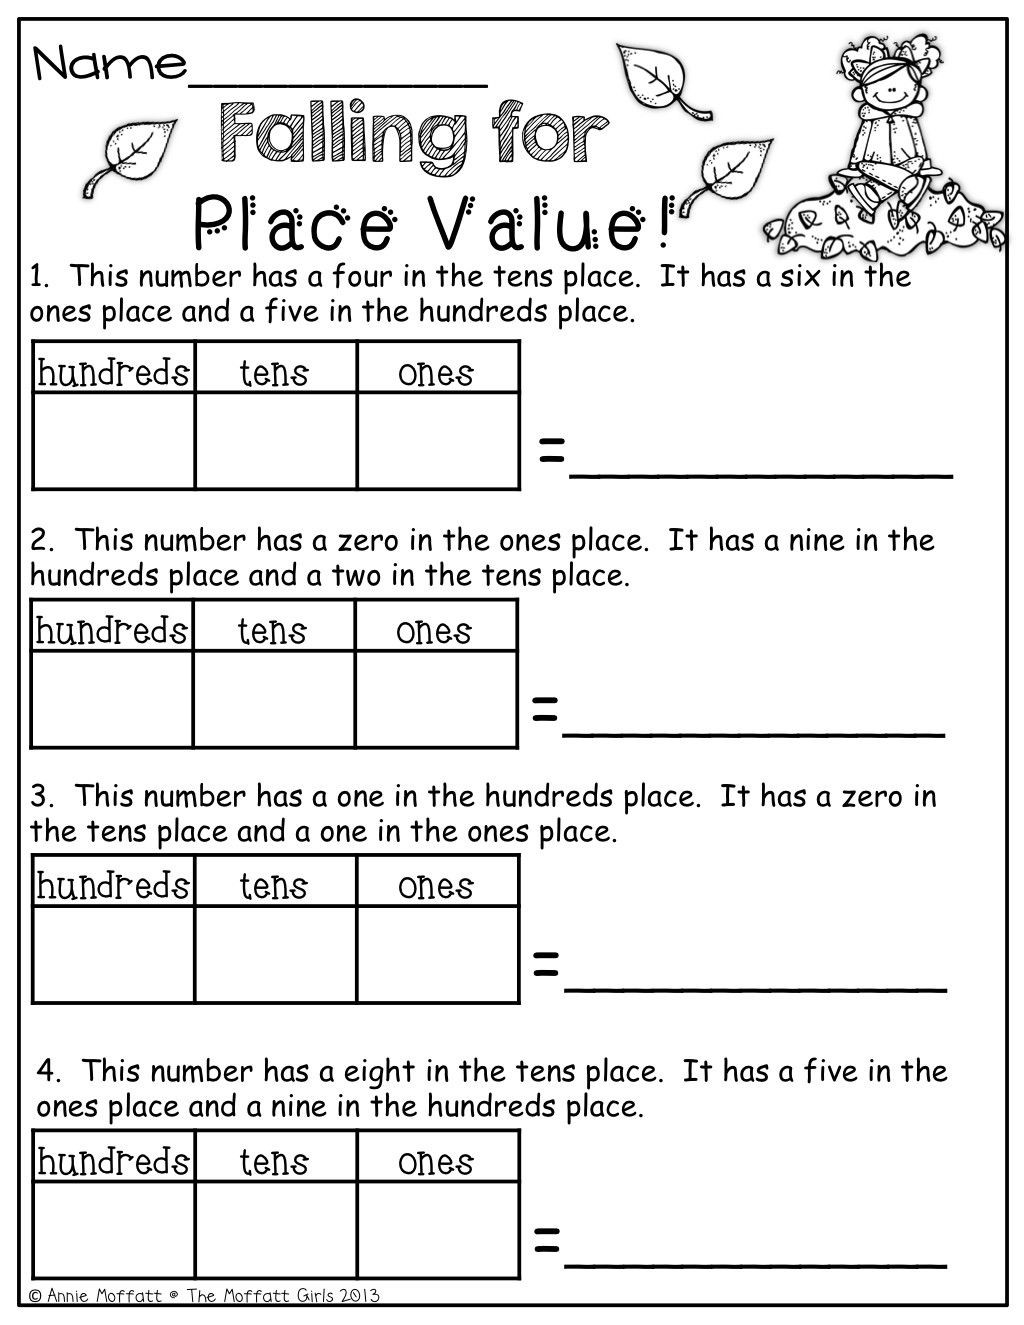 medium resolution of Place Value First Grade Worksheets   Second grade math